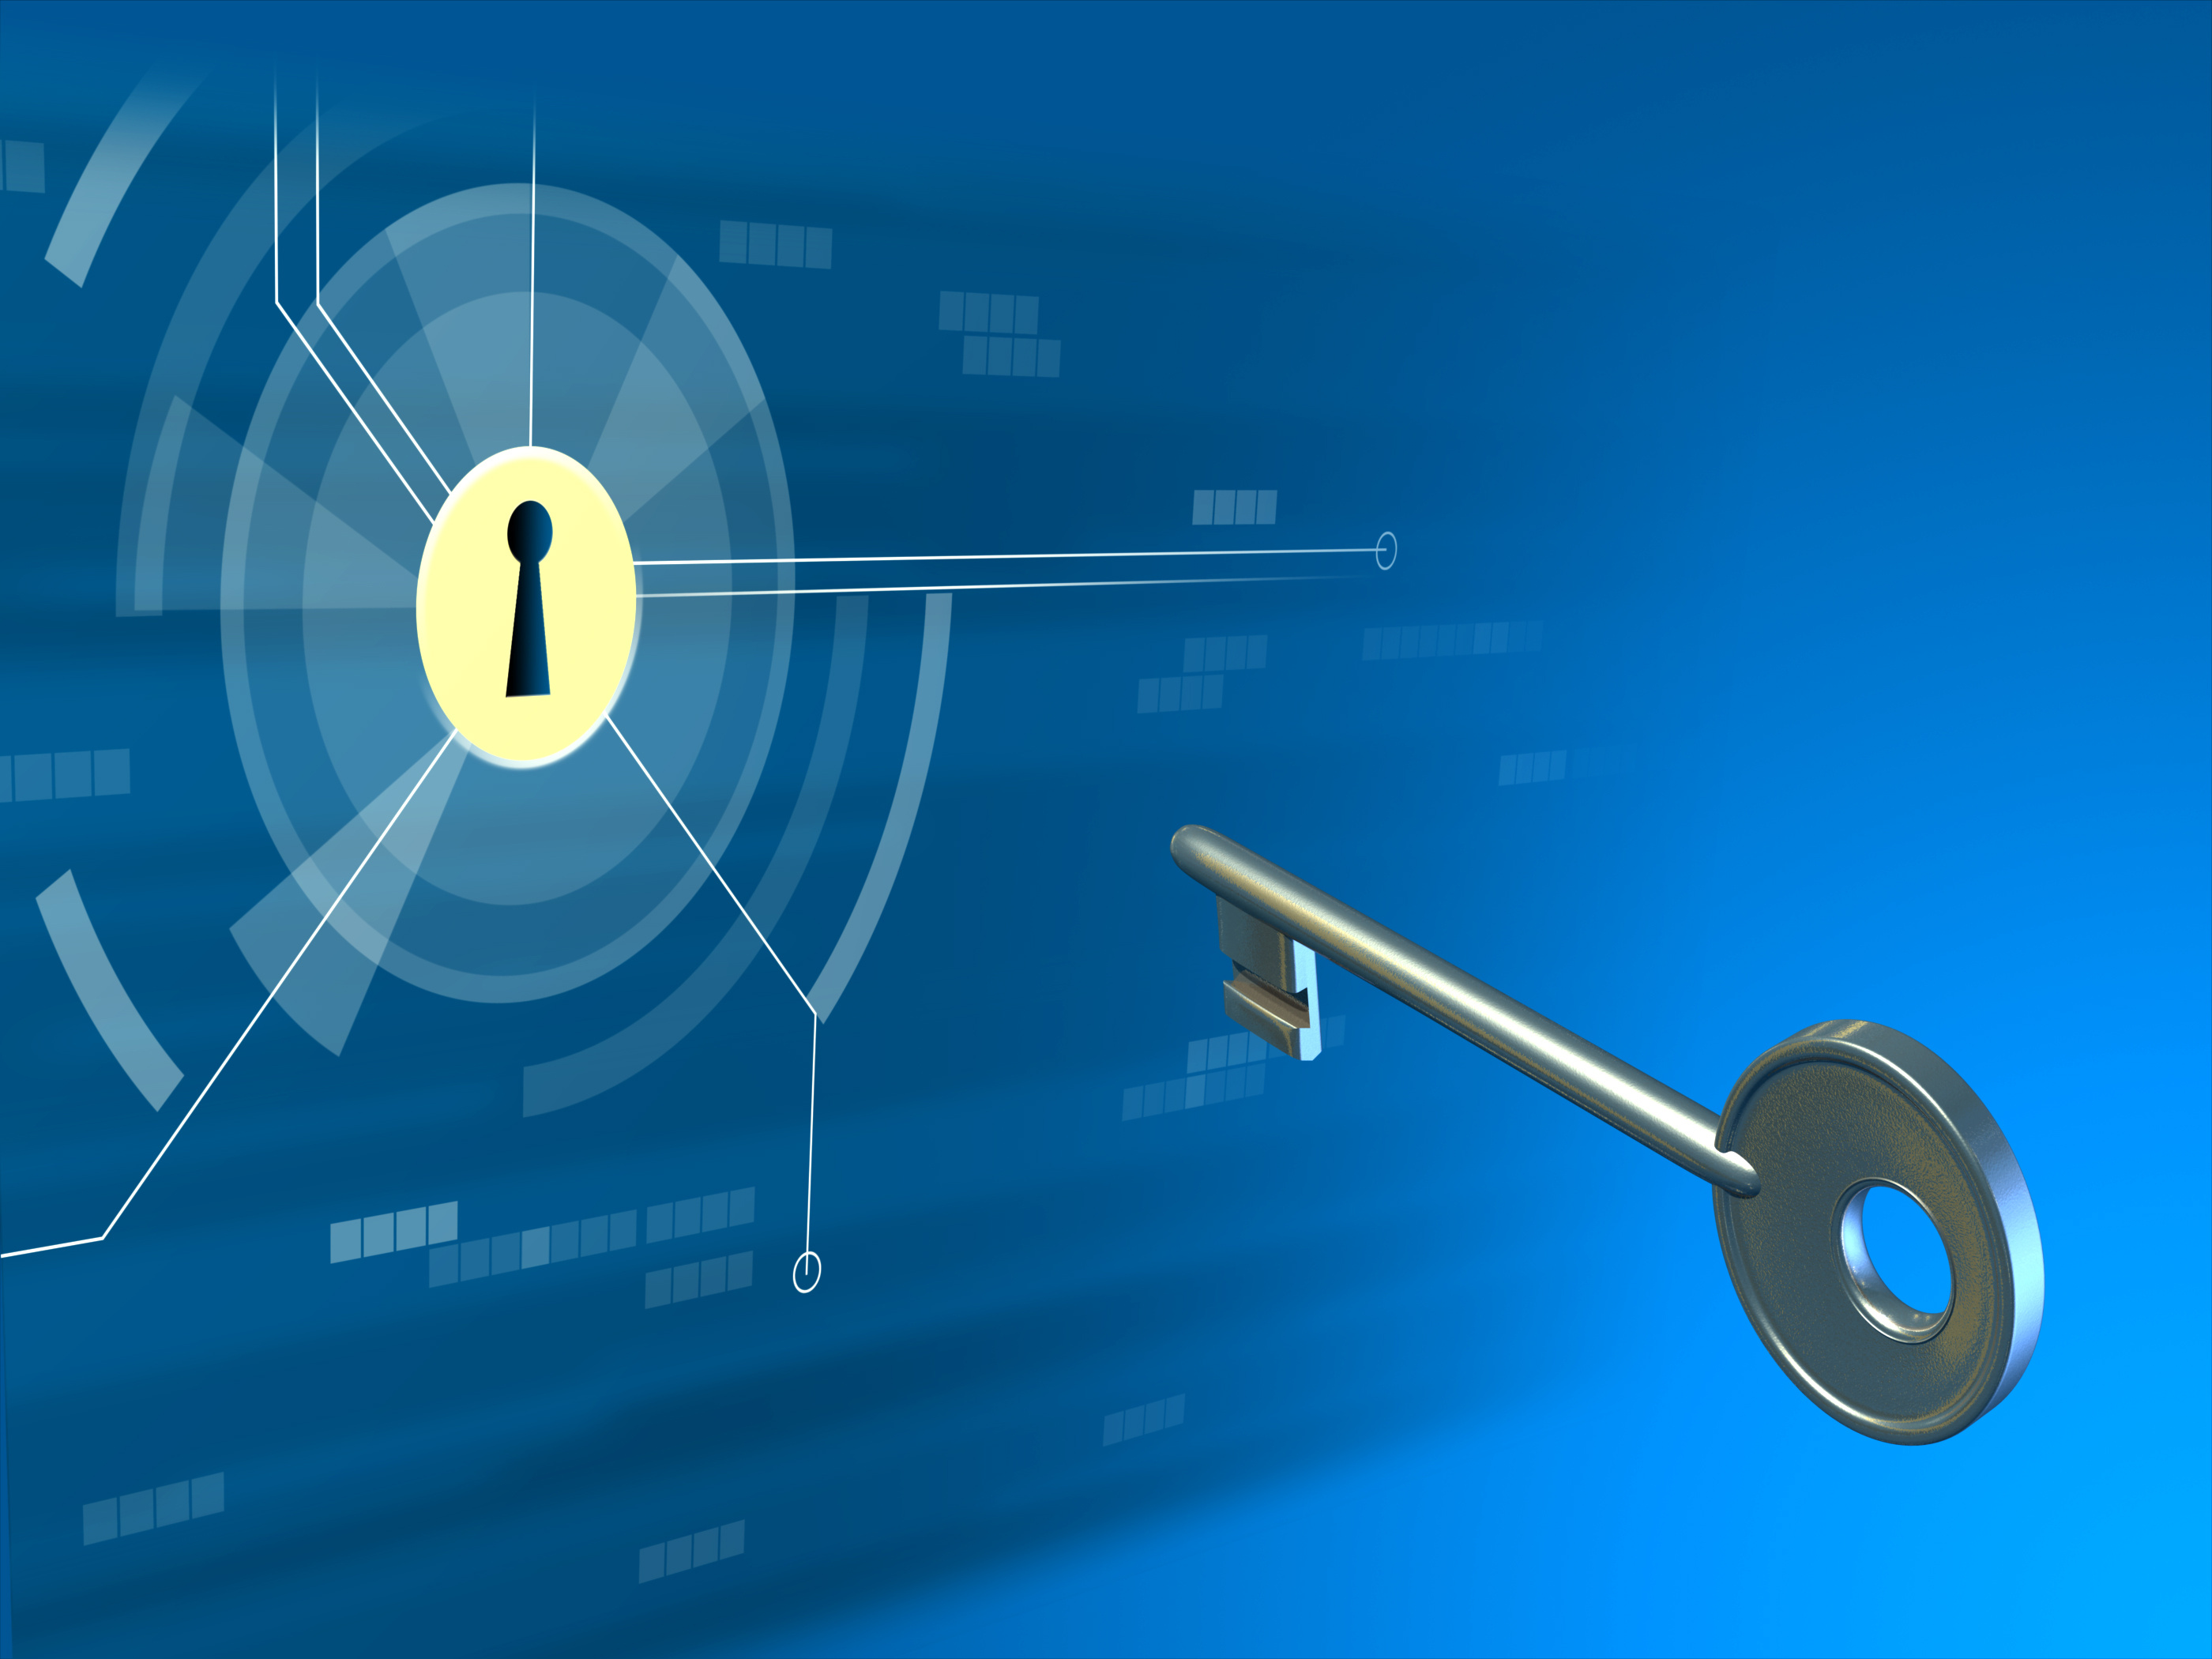 Password Recovery Tools for Windows - NirSoft